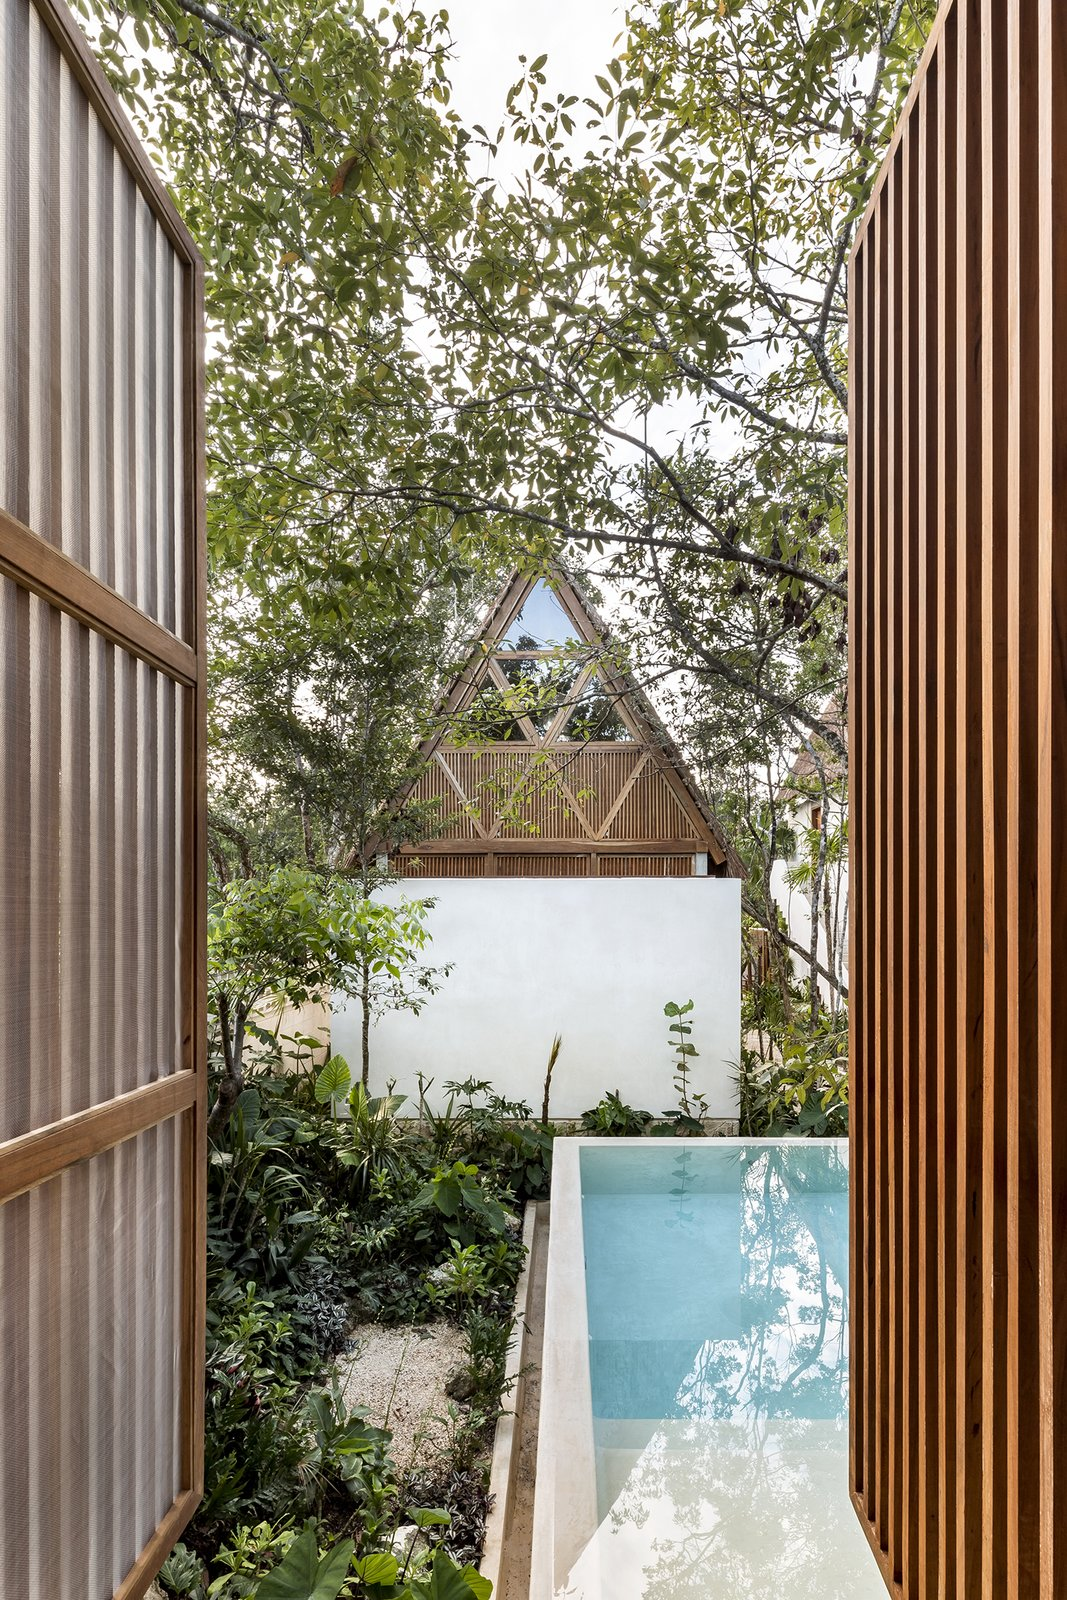 Outdoor, Wood Patio, Porch, Deck, Large Pools, Tubs, Shower, Wood Fences, Wall, Trees, Landscape Lighting, and Infinity Pools, Tubs, Shower  Jungle Keva